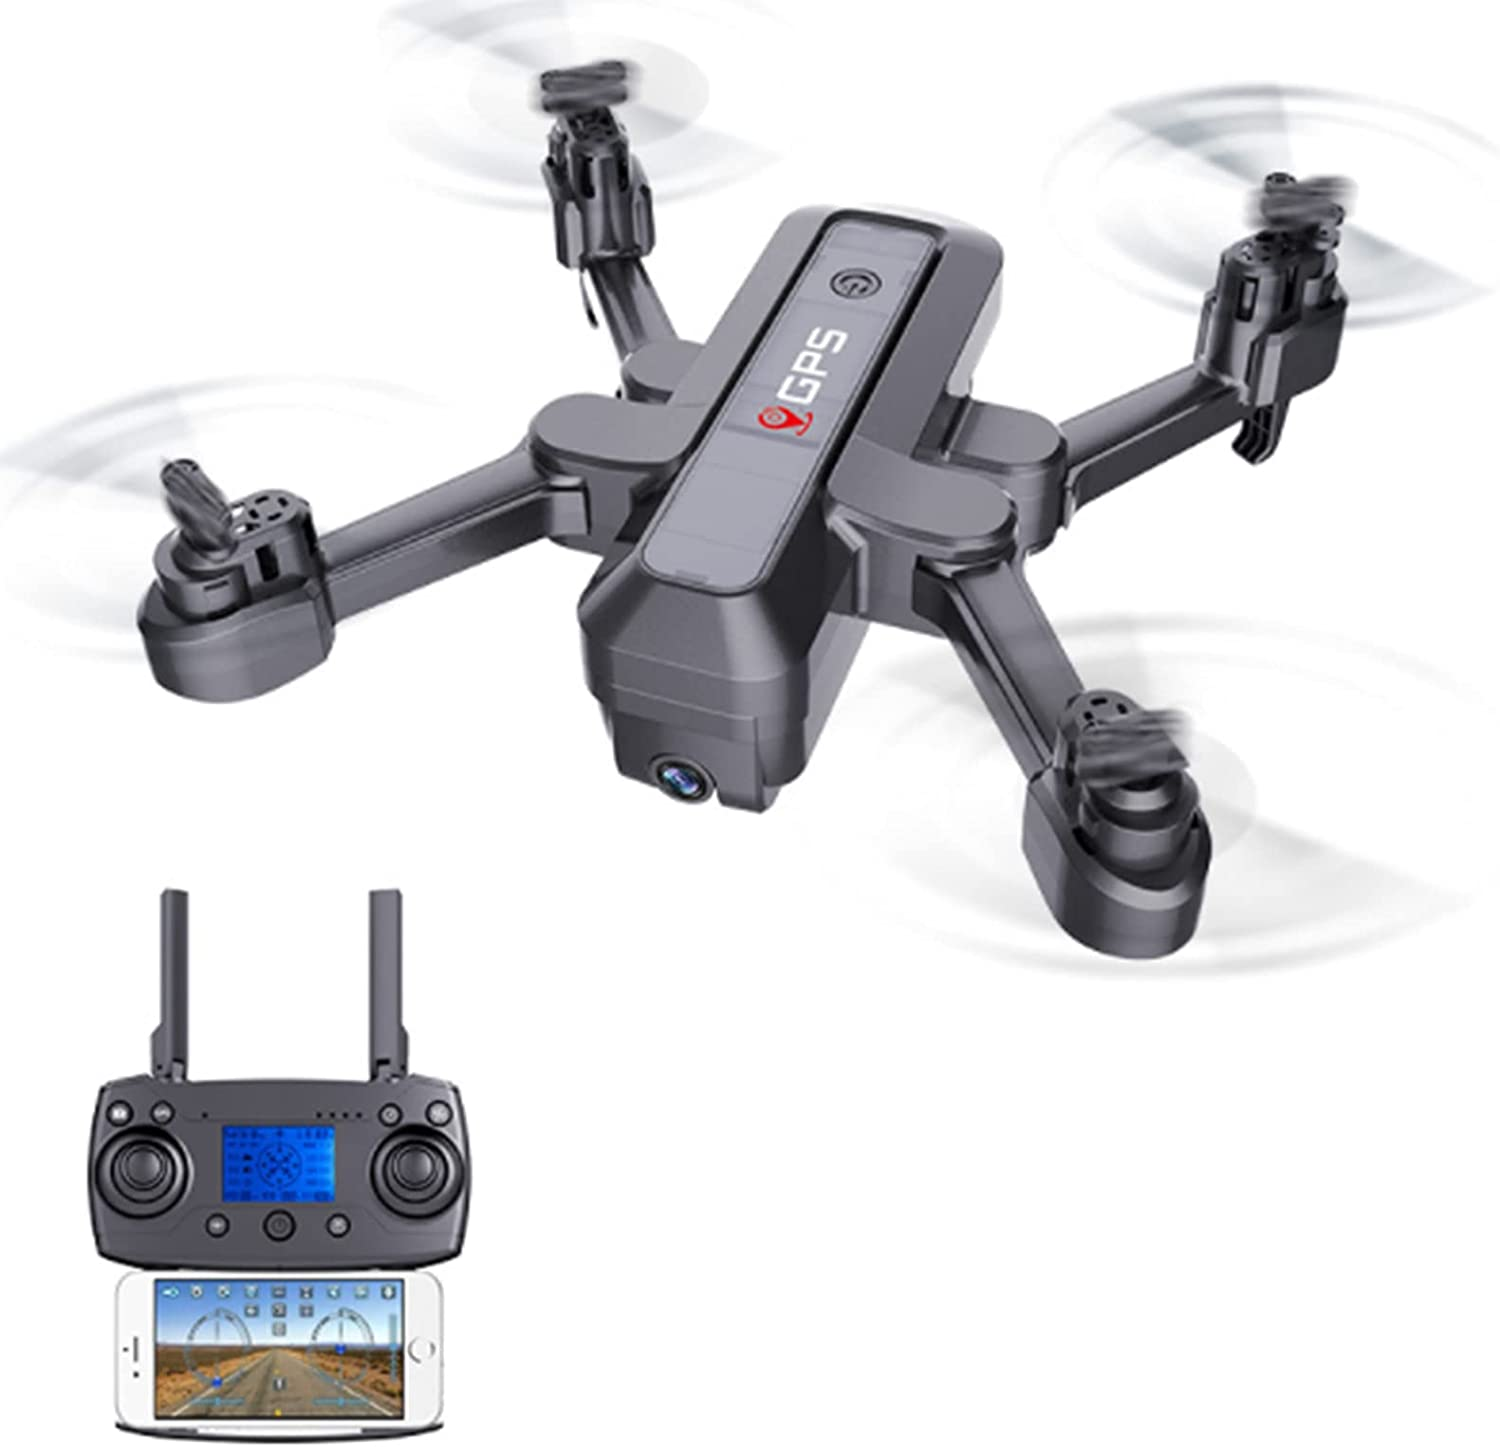 70% OFF Outlet 4DRC Selling and selling GPS Drone with 4K HD Camera FPV for Adults Live Video 5Ghz